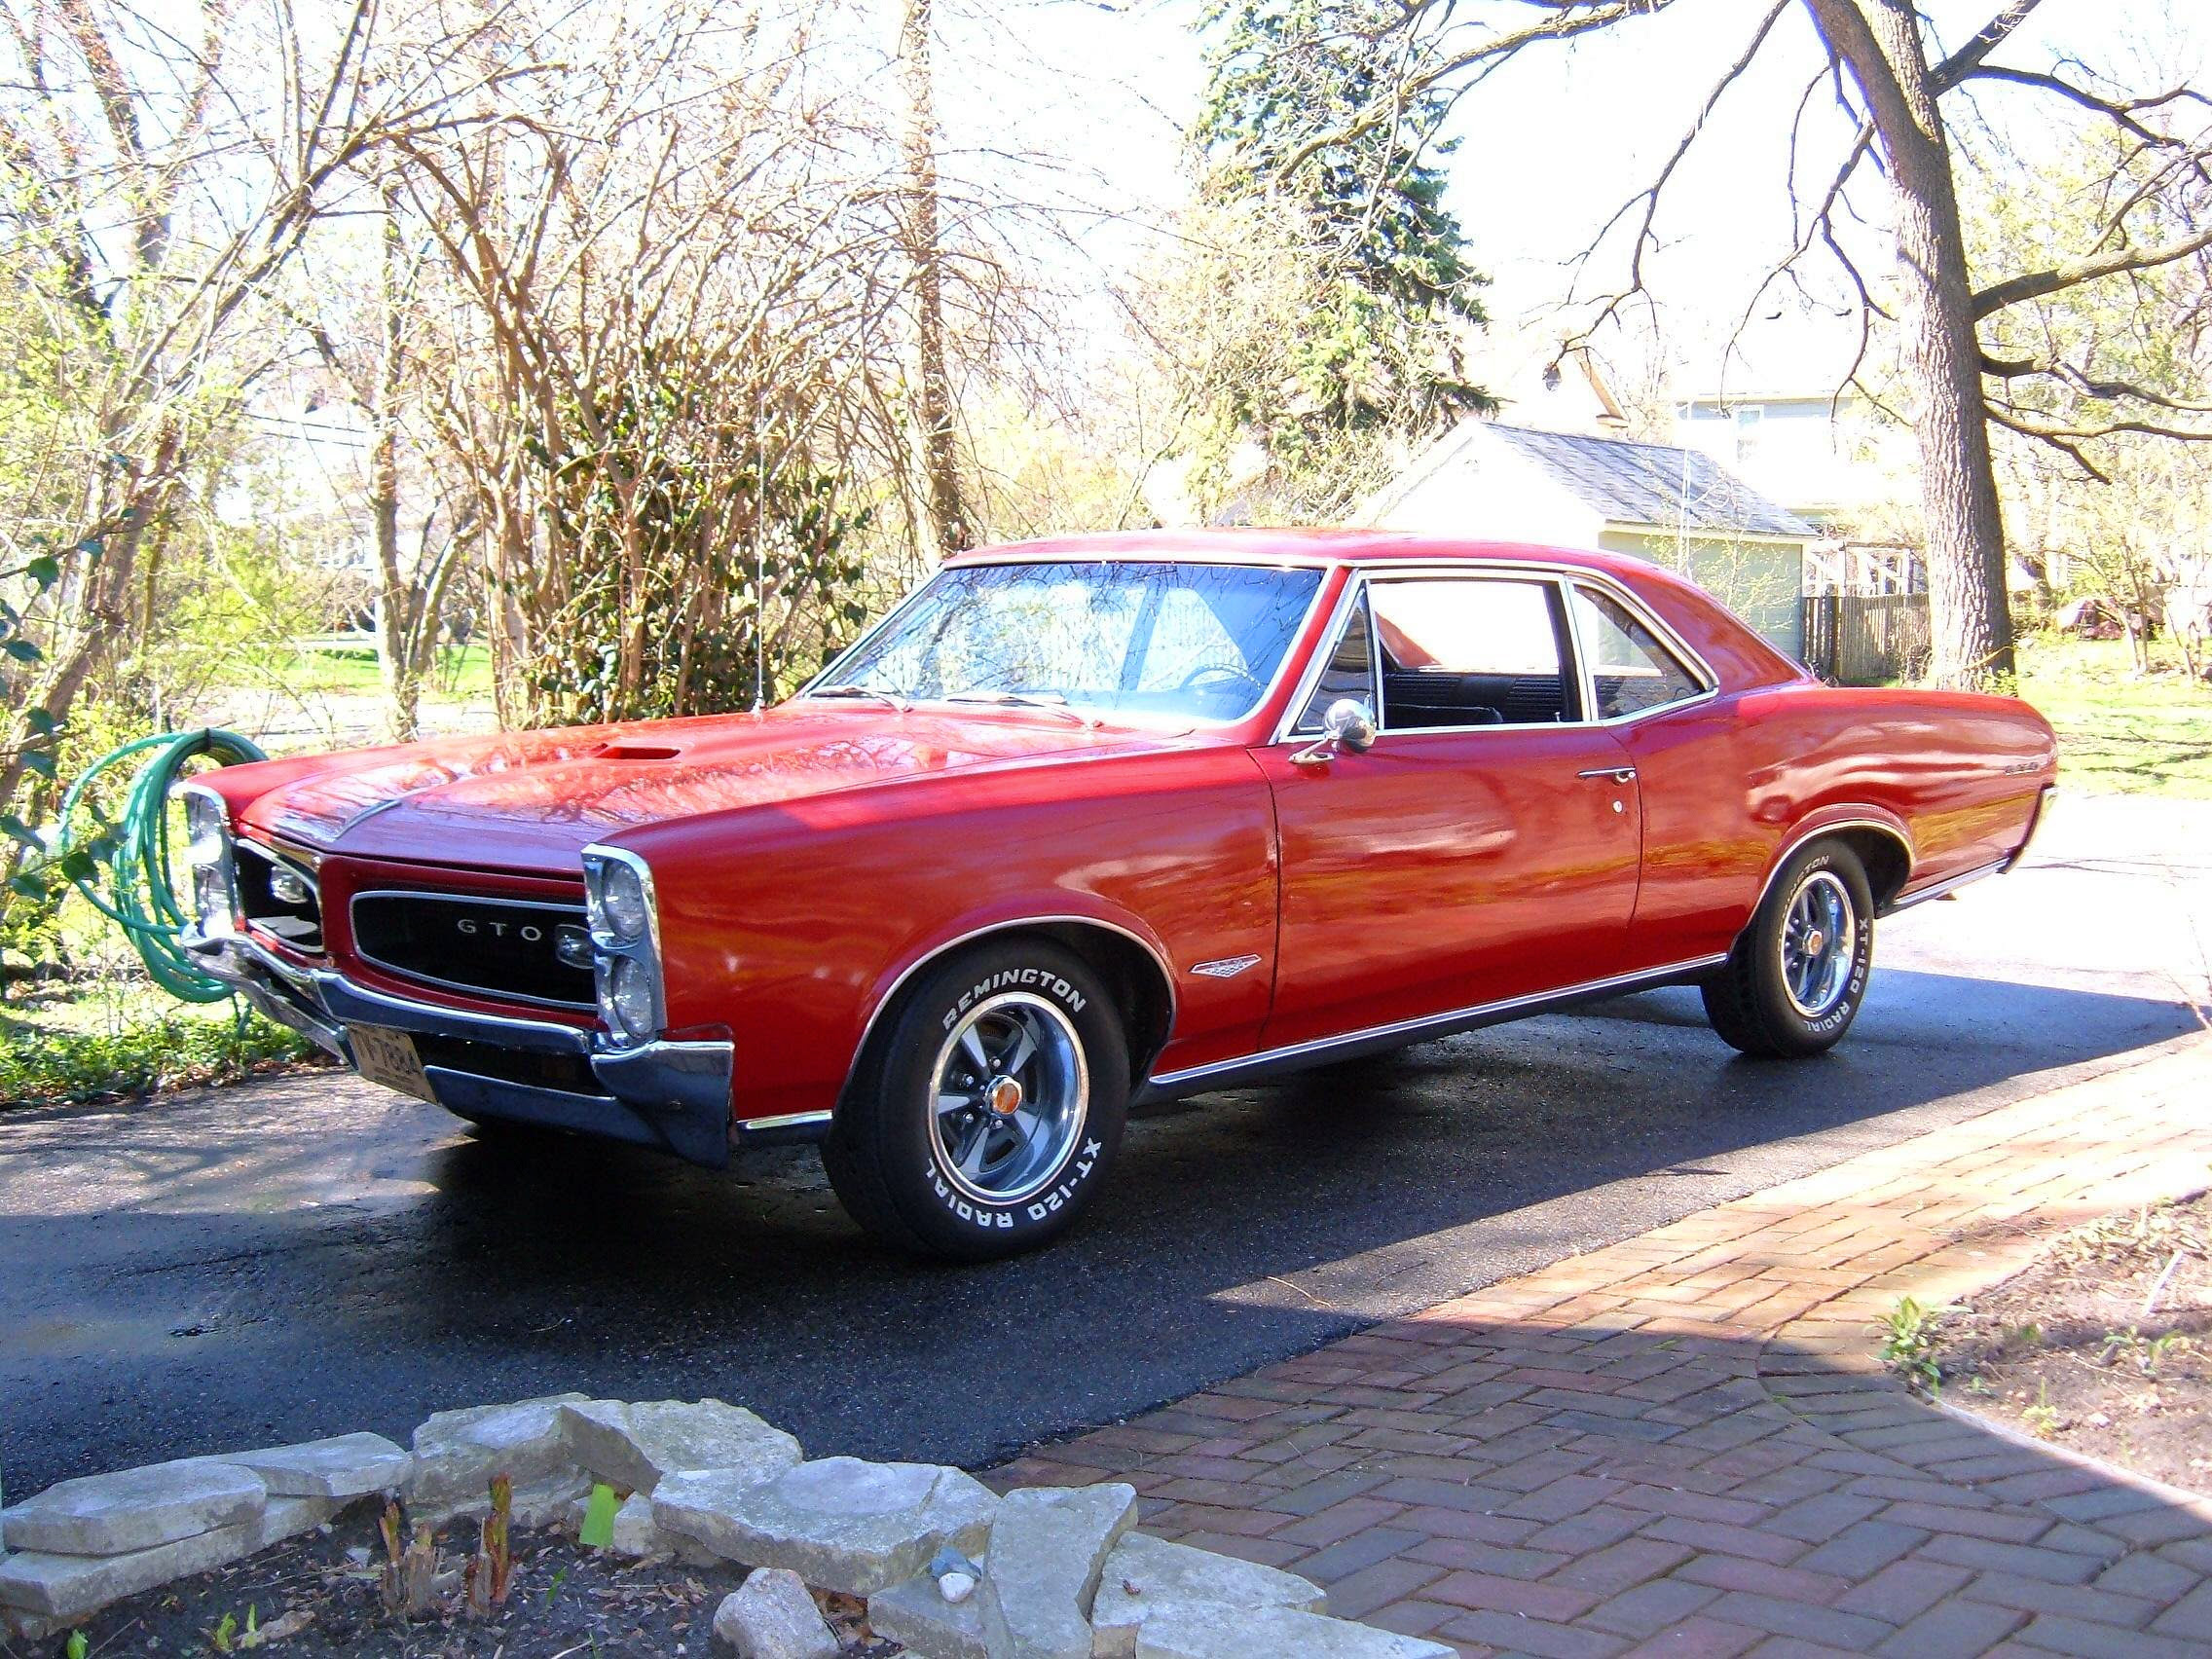 http://upload.wikimedia.org/wikipedia/commons/2/23/Pontiac_GTO_1966.jpg